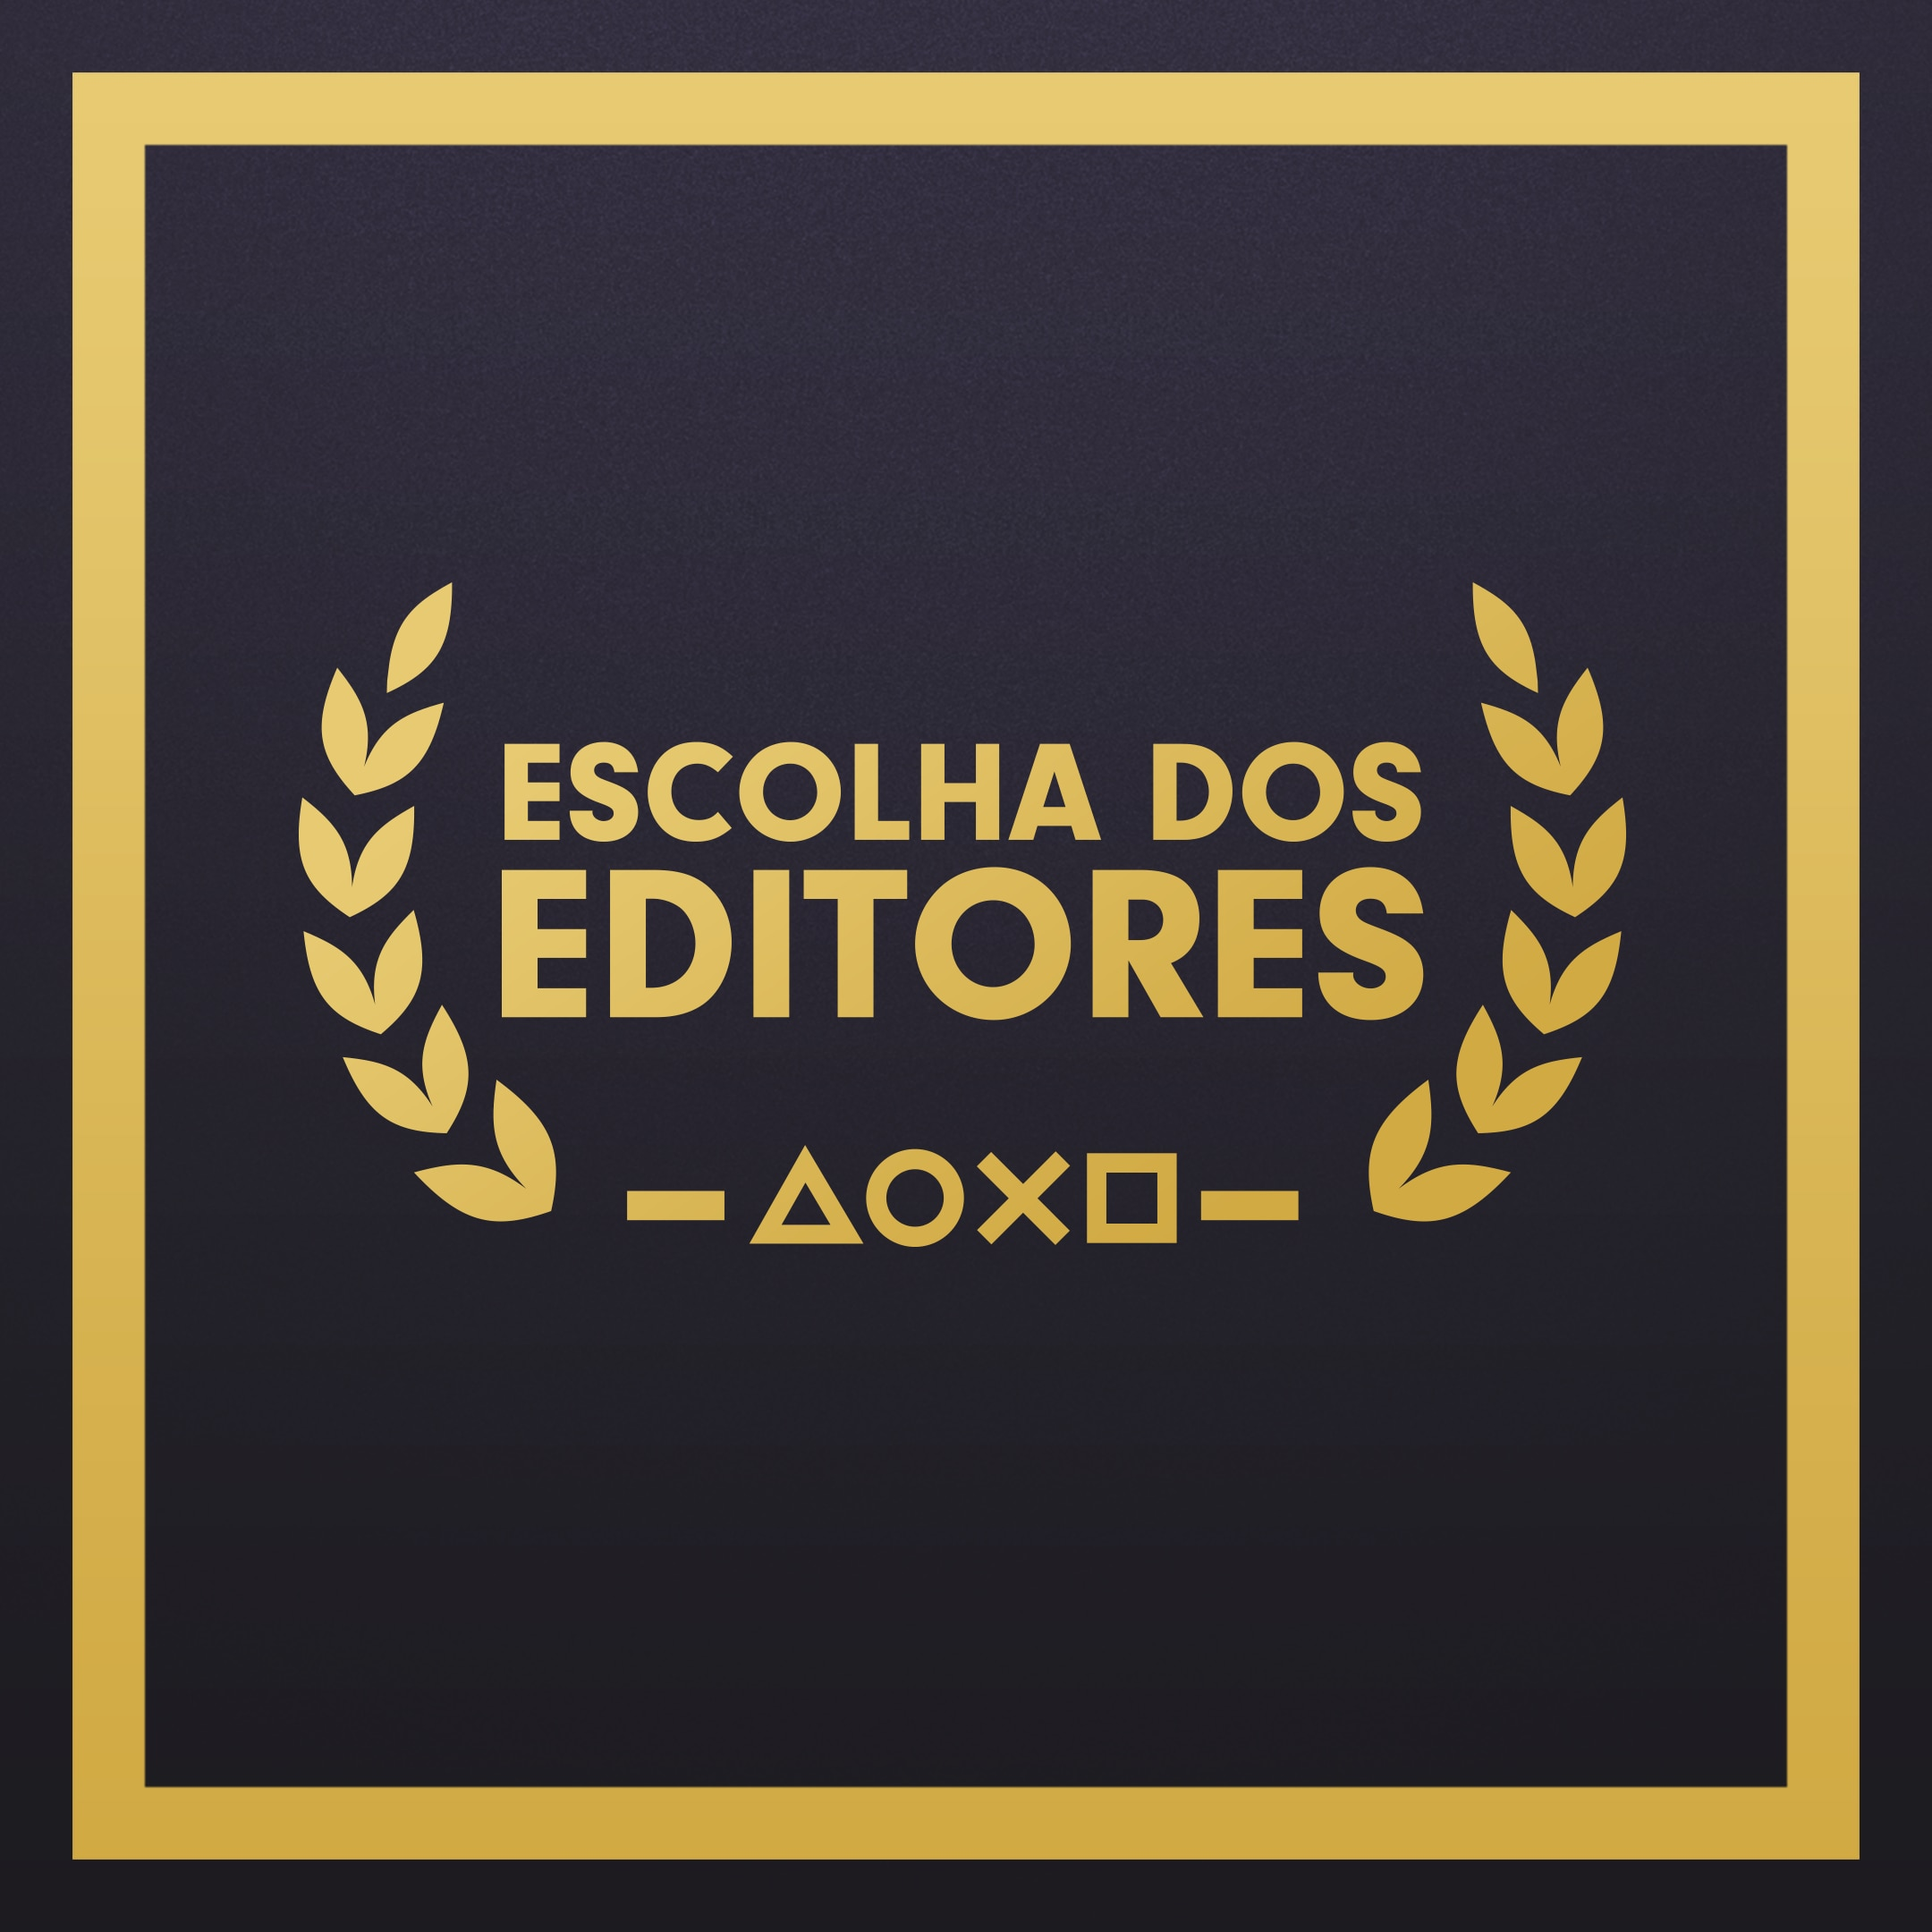 [EDITORIAL] Editors' Choice Web S26